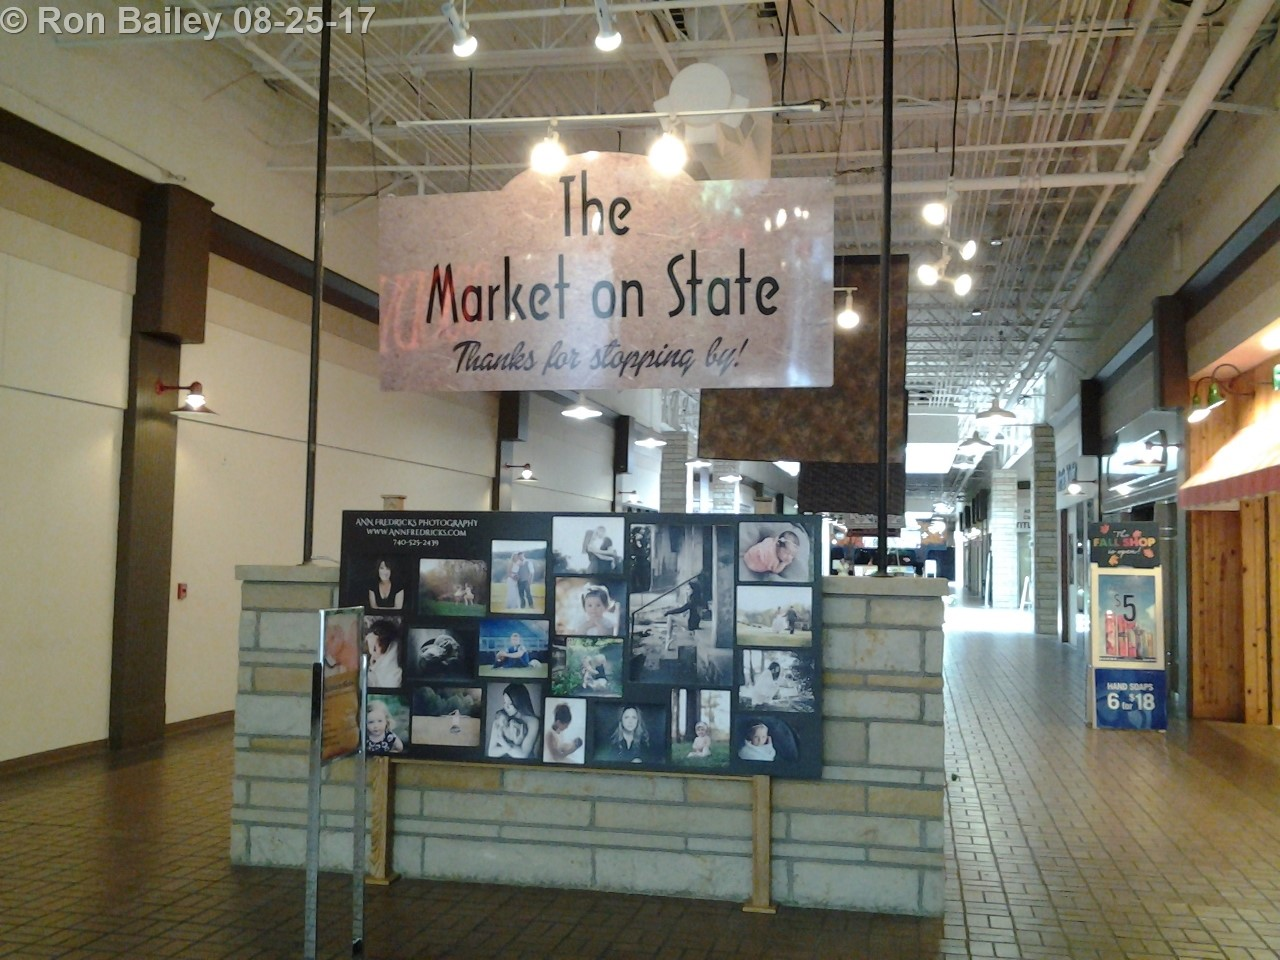 The Market on State  8-25-2017 2-48-03 PM 8-25-2017 2-56-21 PM